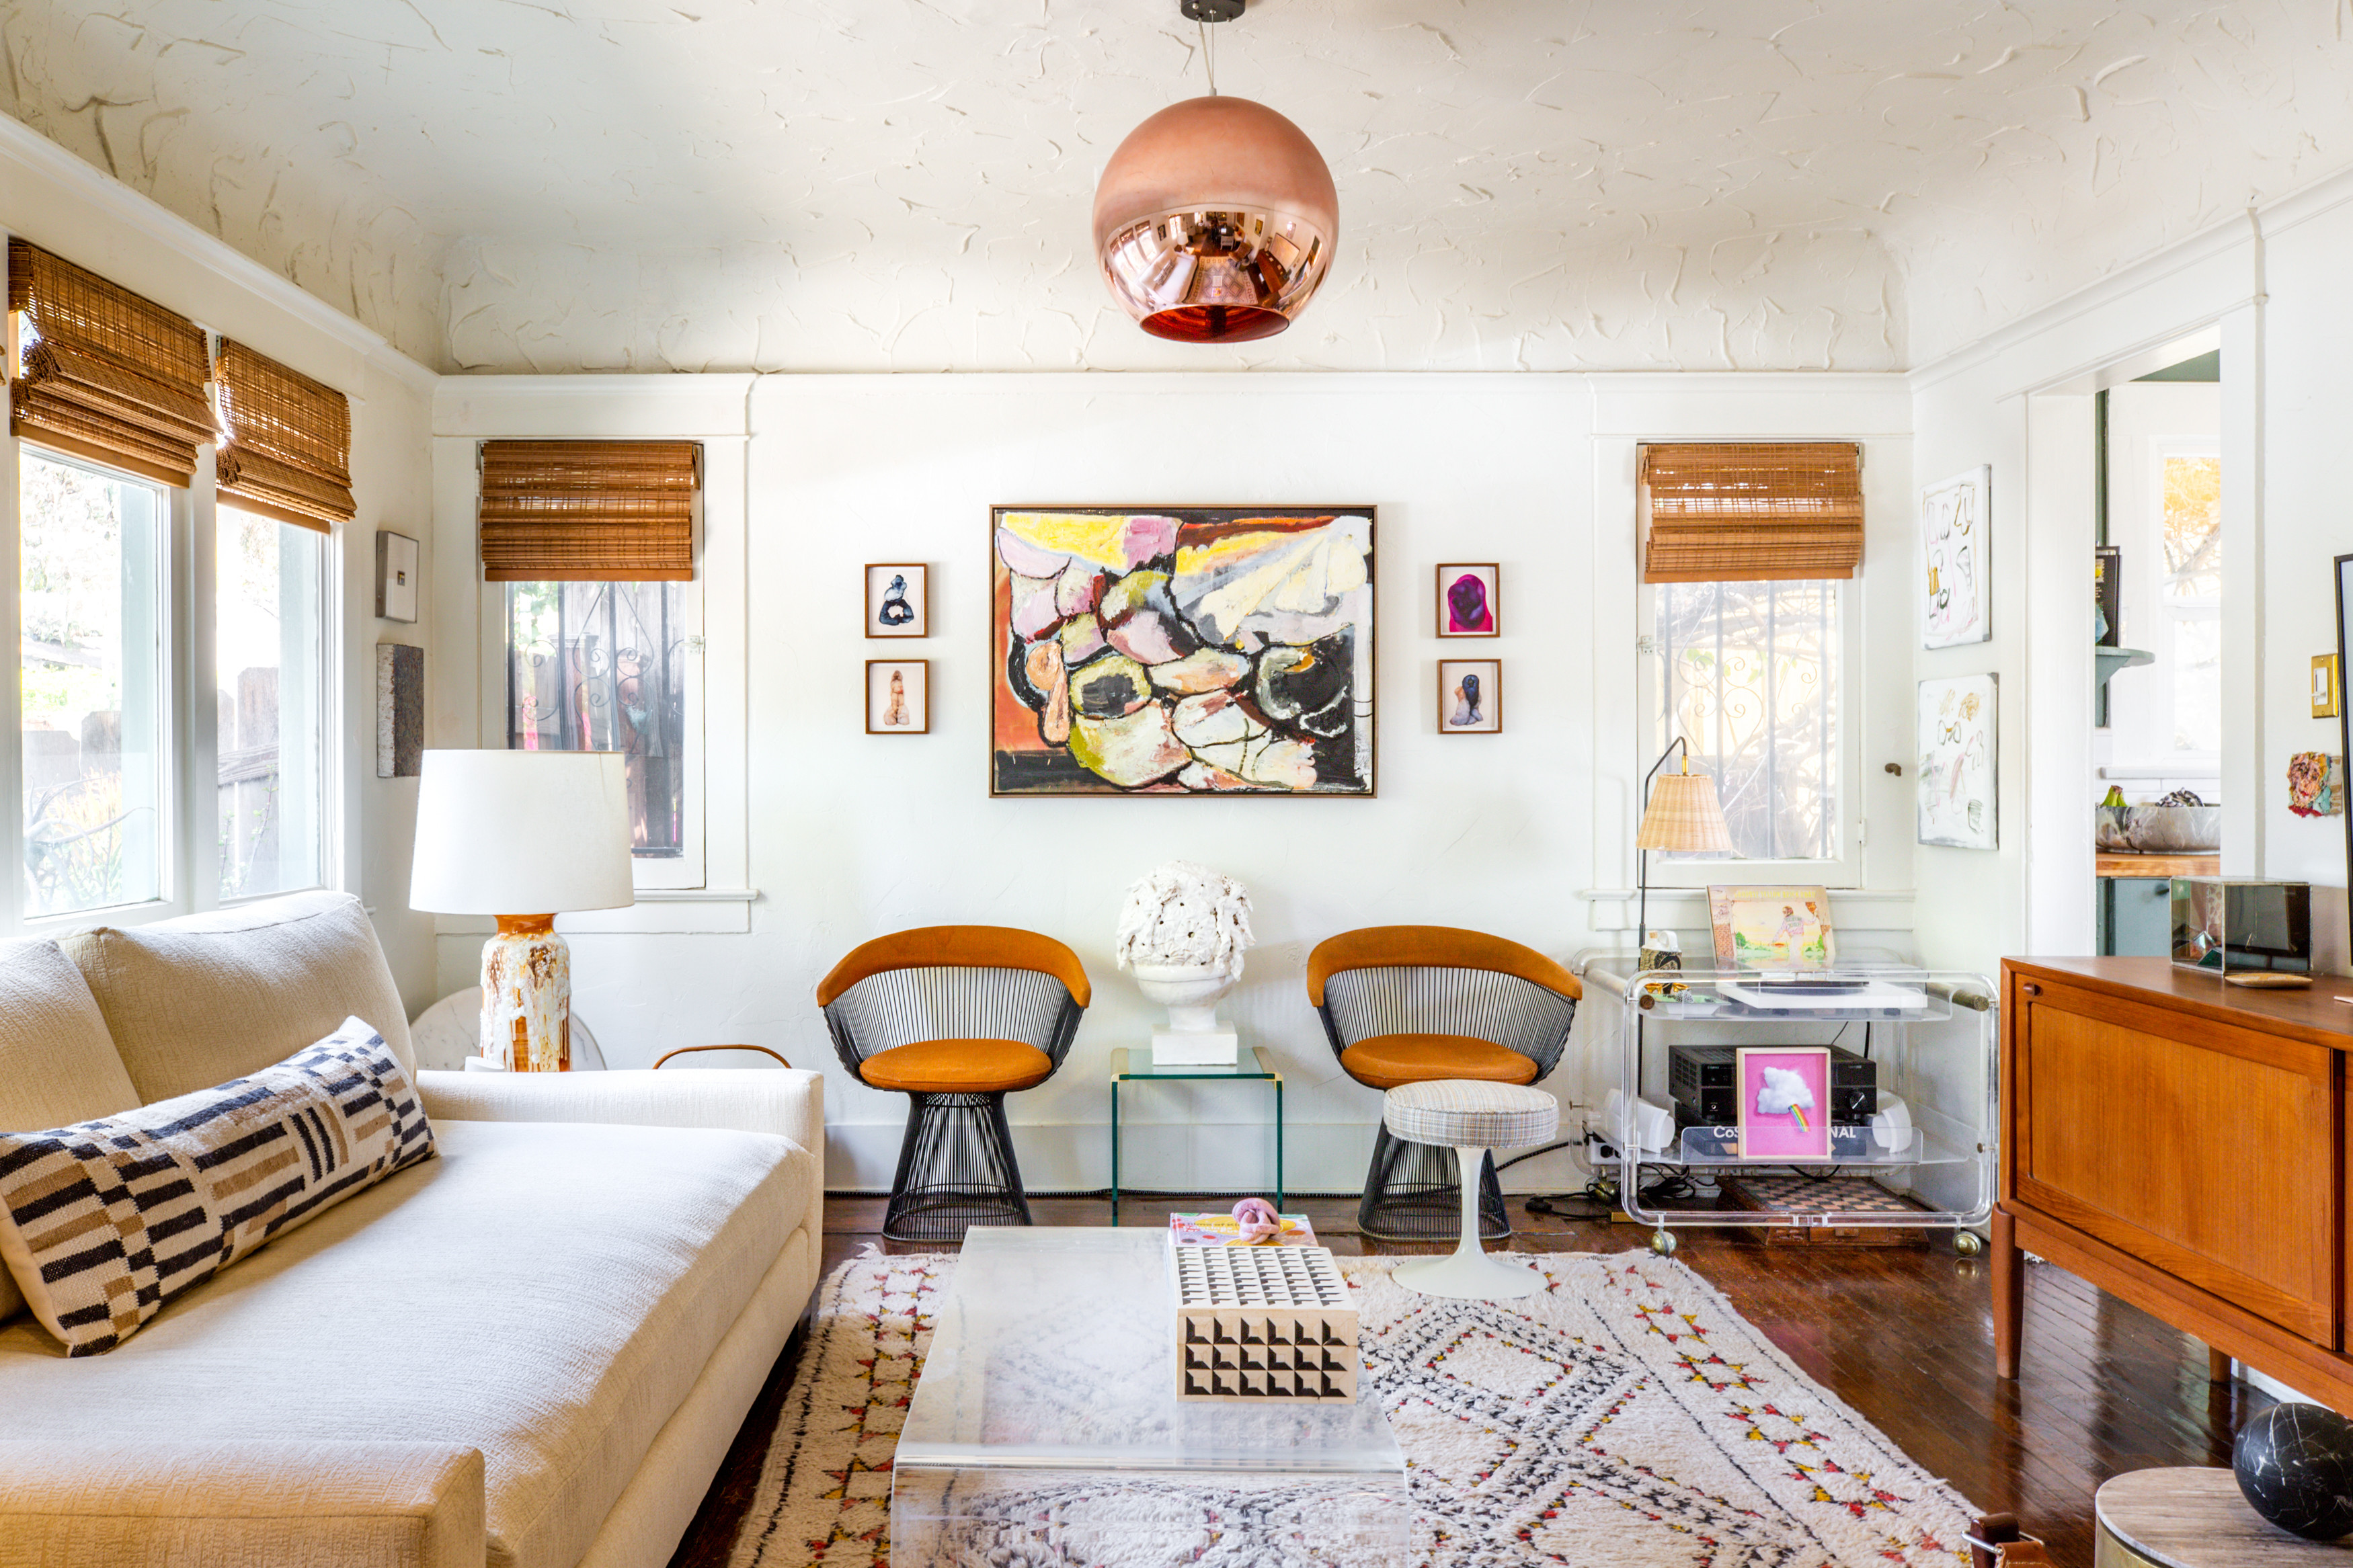 Molofsky opted for a neutral foundation in the living room, injecting a maximalist vibe through pattern and texture.The Joneses LA Custom Sofa |Parchute Pillow |Warren Platner Armchairs |Robert Gunderman Painting |Polly Borland Photographs |Vintage Lucite Coffee Table|Serena & Lily Floor Lamp |Samsung Frame TV